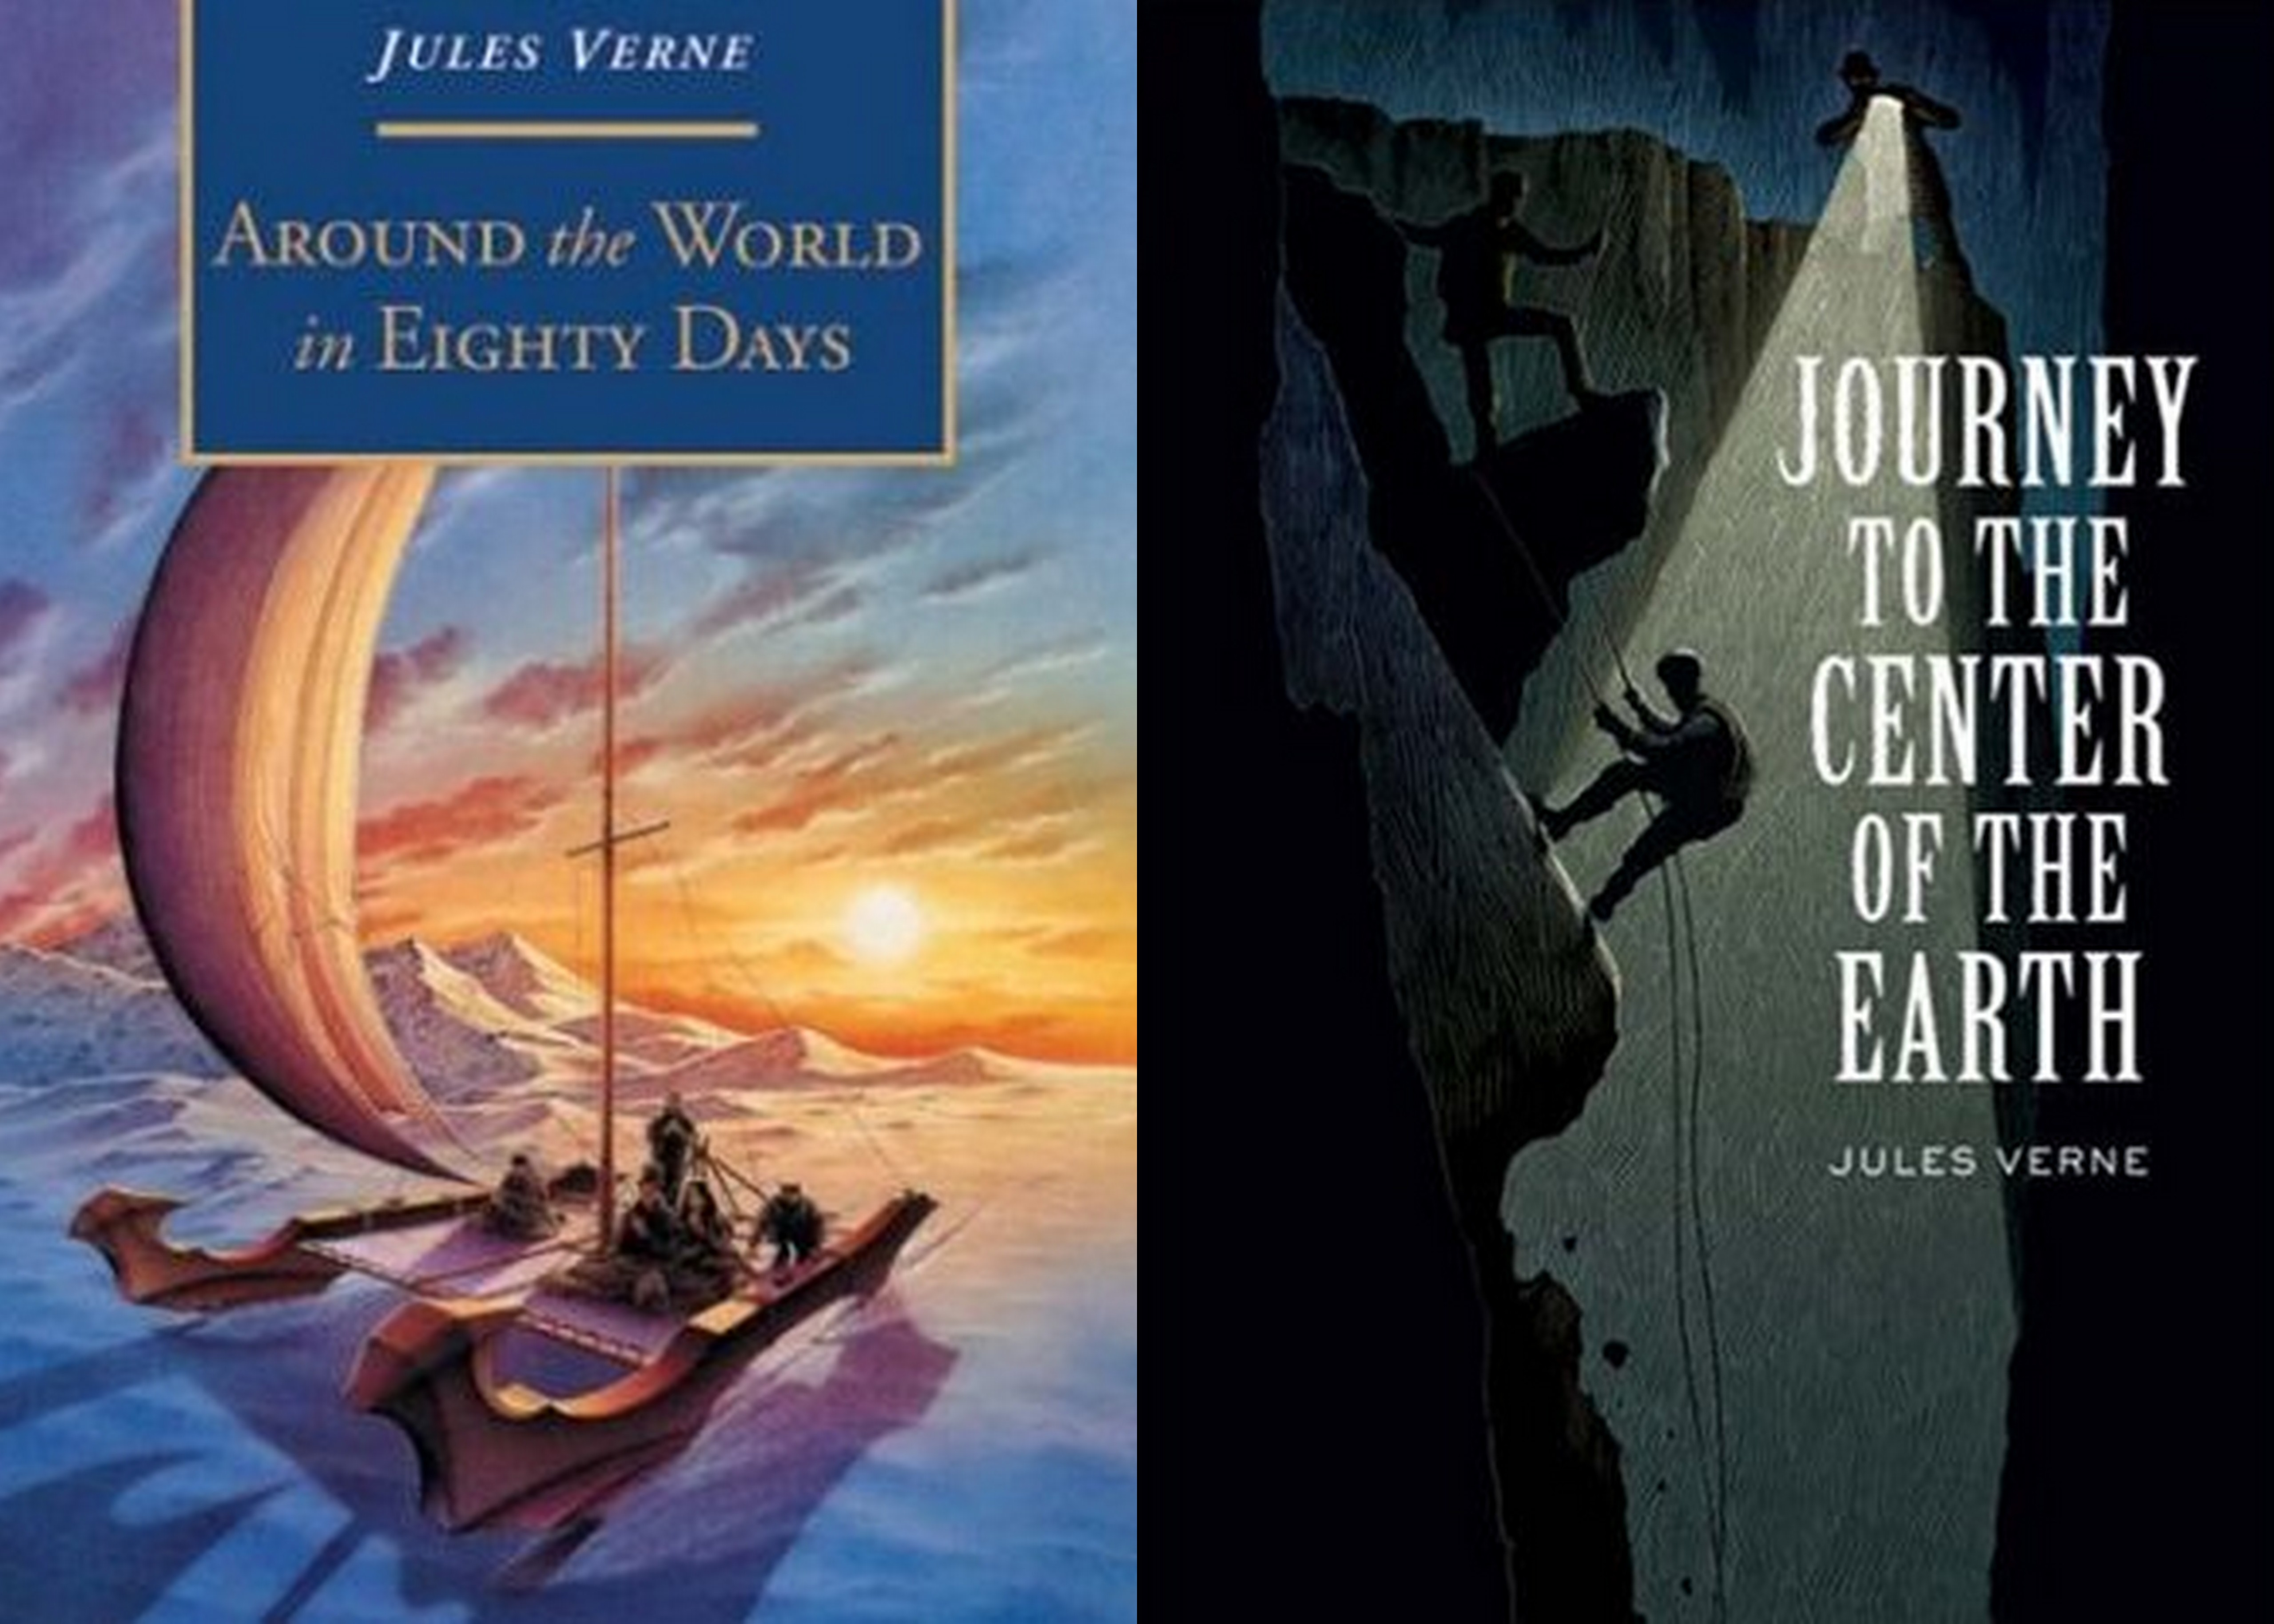 a review of the book journey to the center of the earth